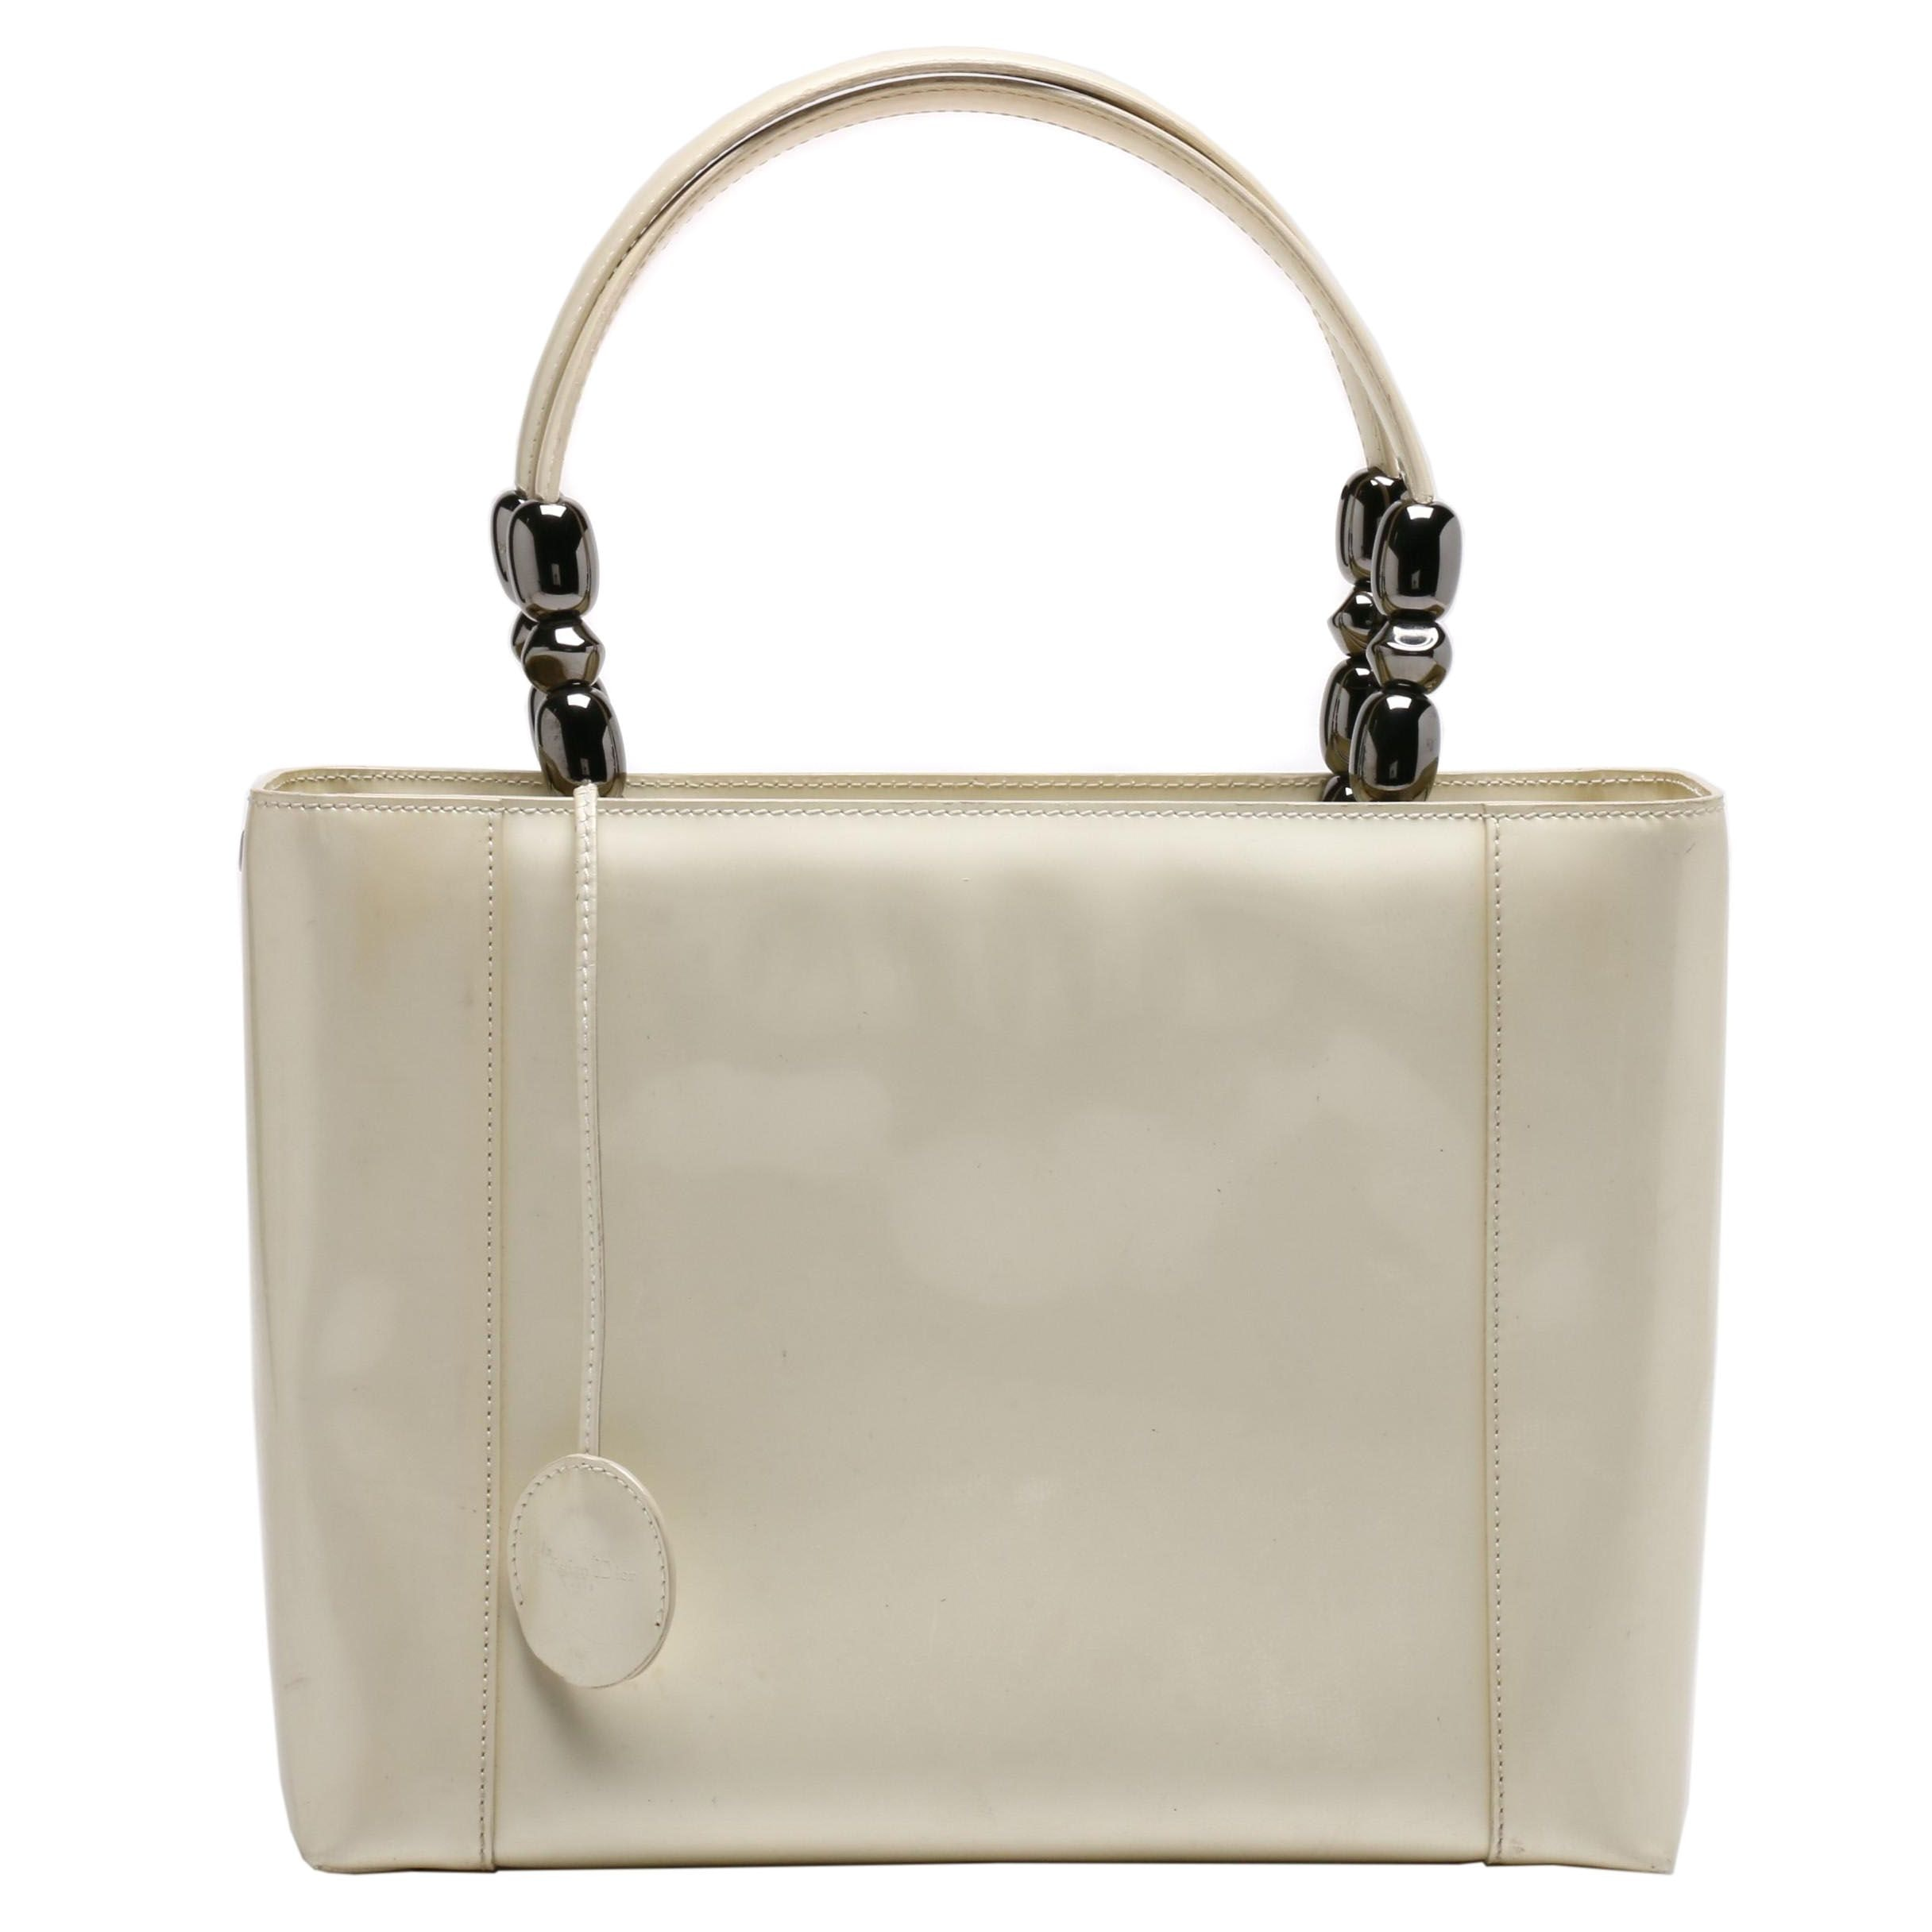 Christian Dior Paris Cream Patent Leather Malice Beaded Handle Tote Bag